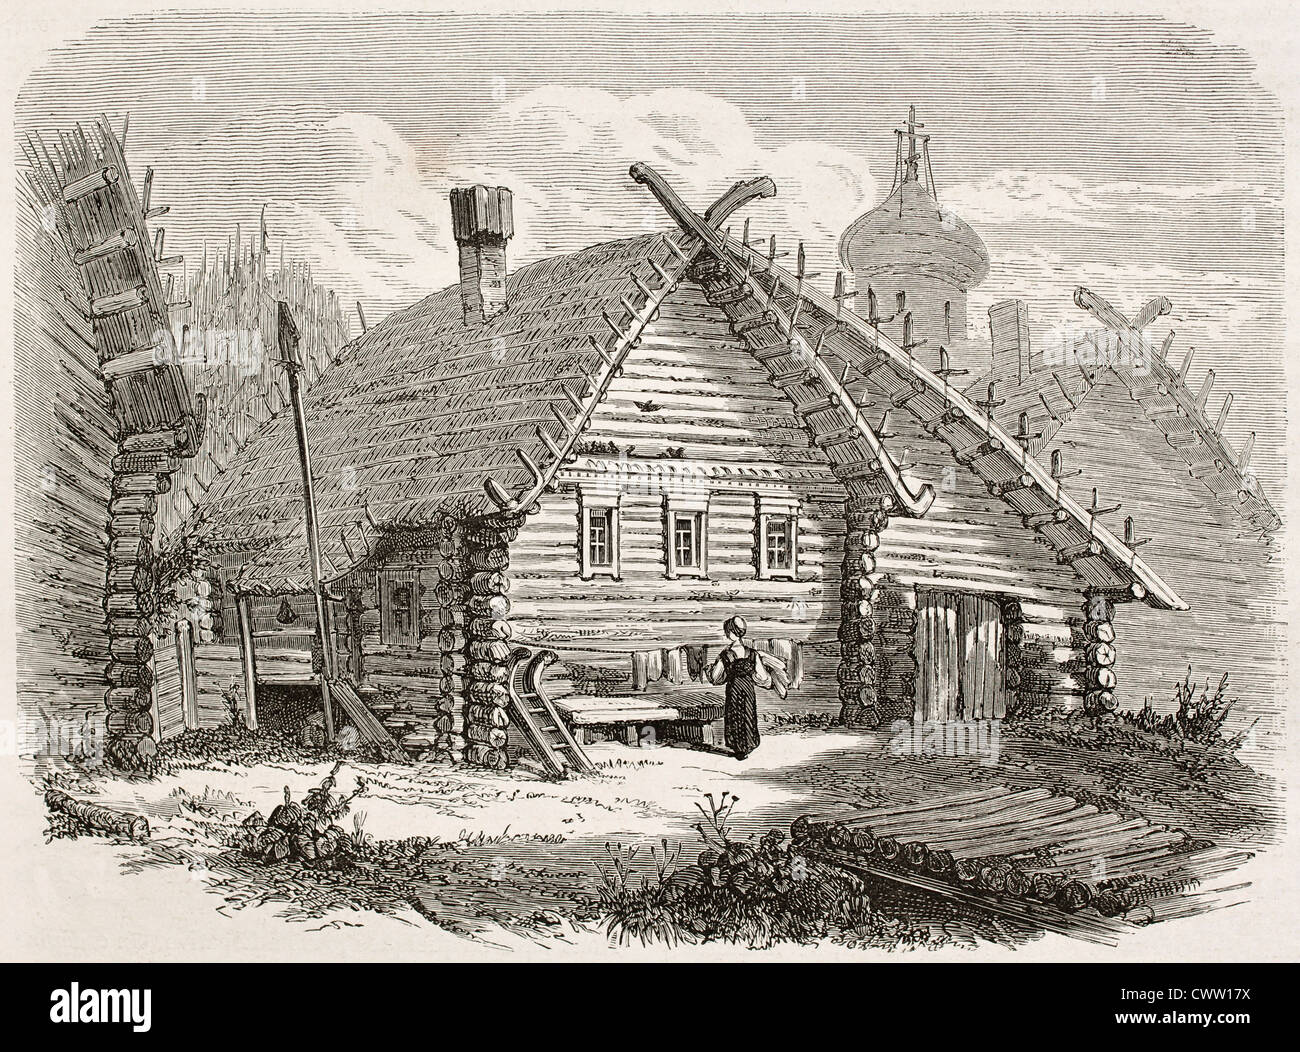 Elpativo old view, Russian village - Stock Image